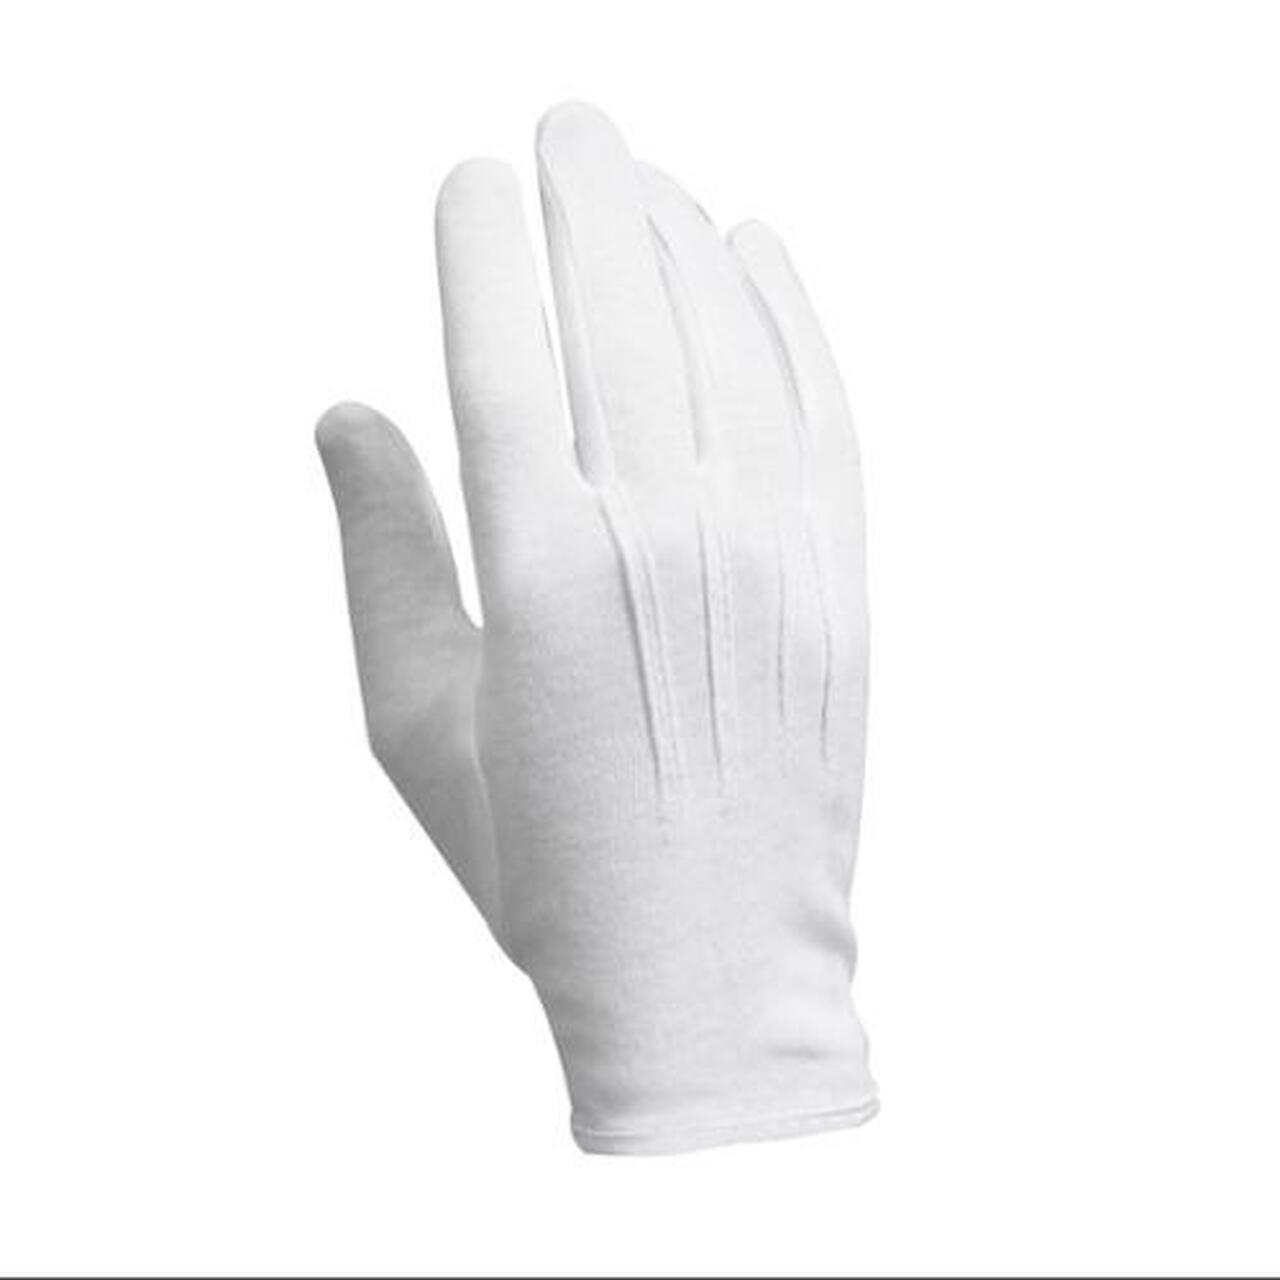 Surplus Canadian Forces White Dress Gloves (Pack of 44 Random Gloves)